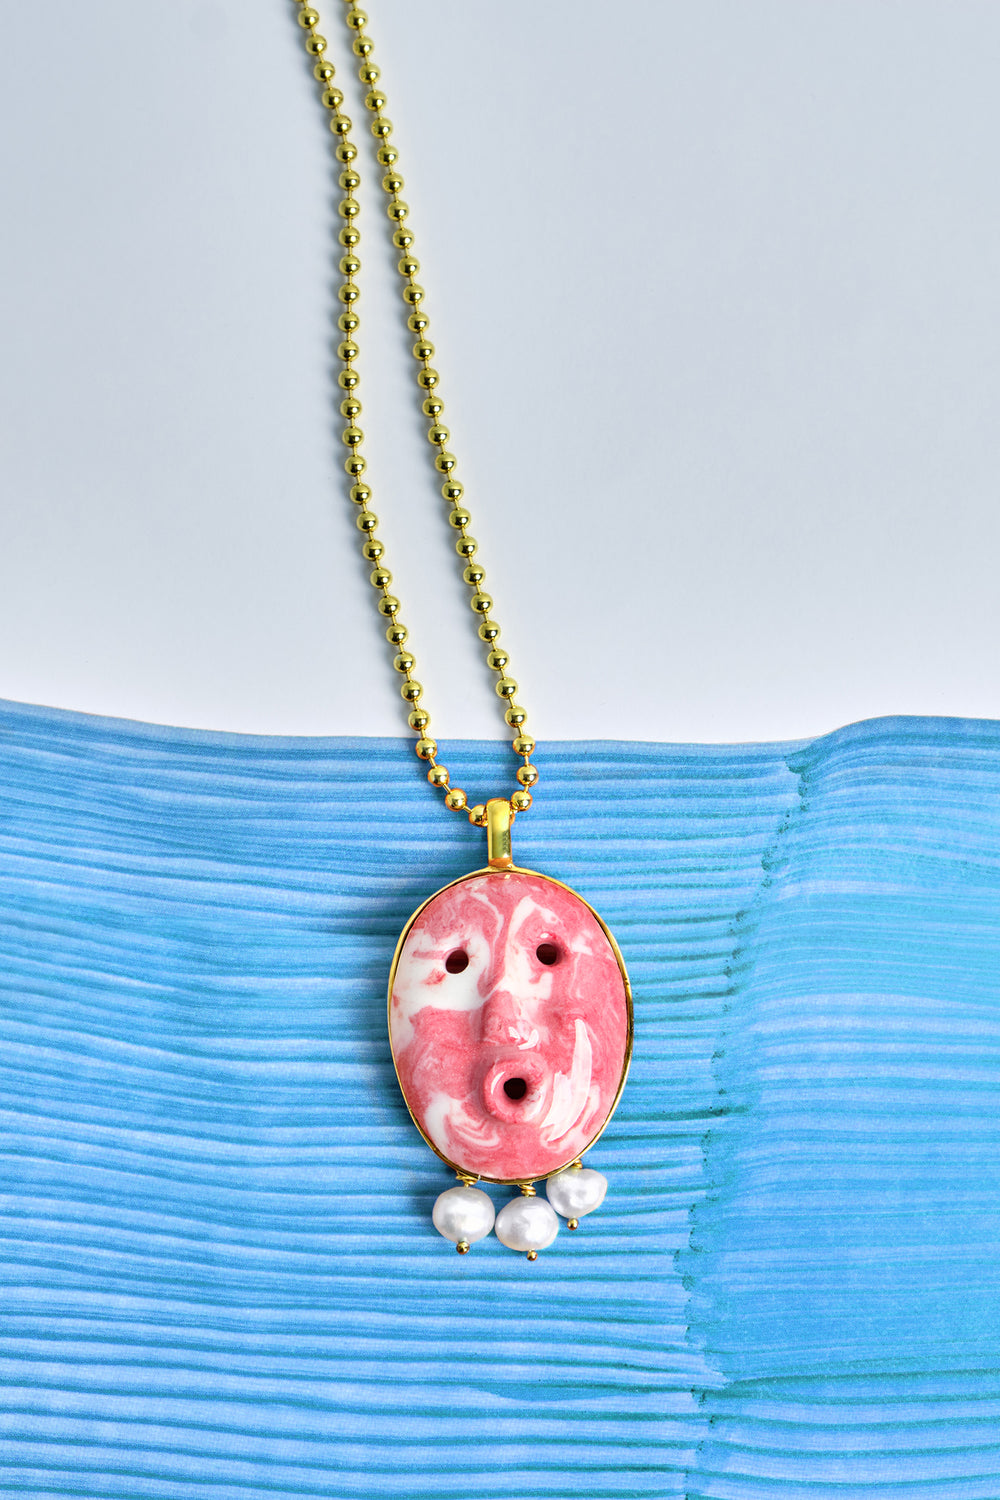 Lares necklace in red marble